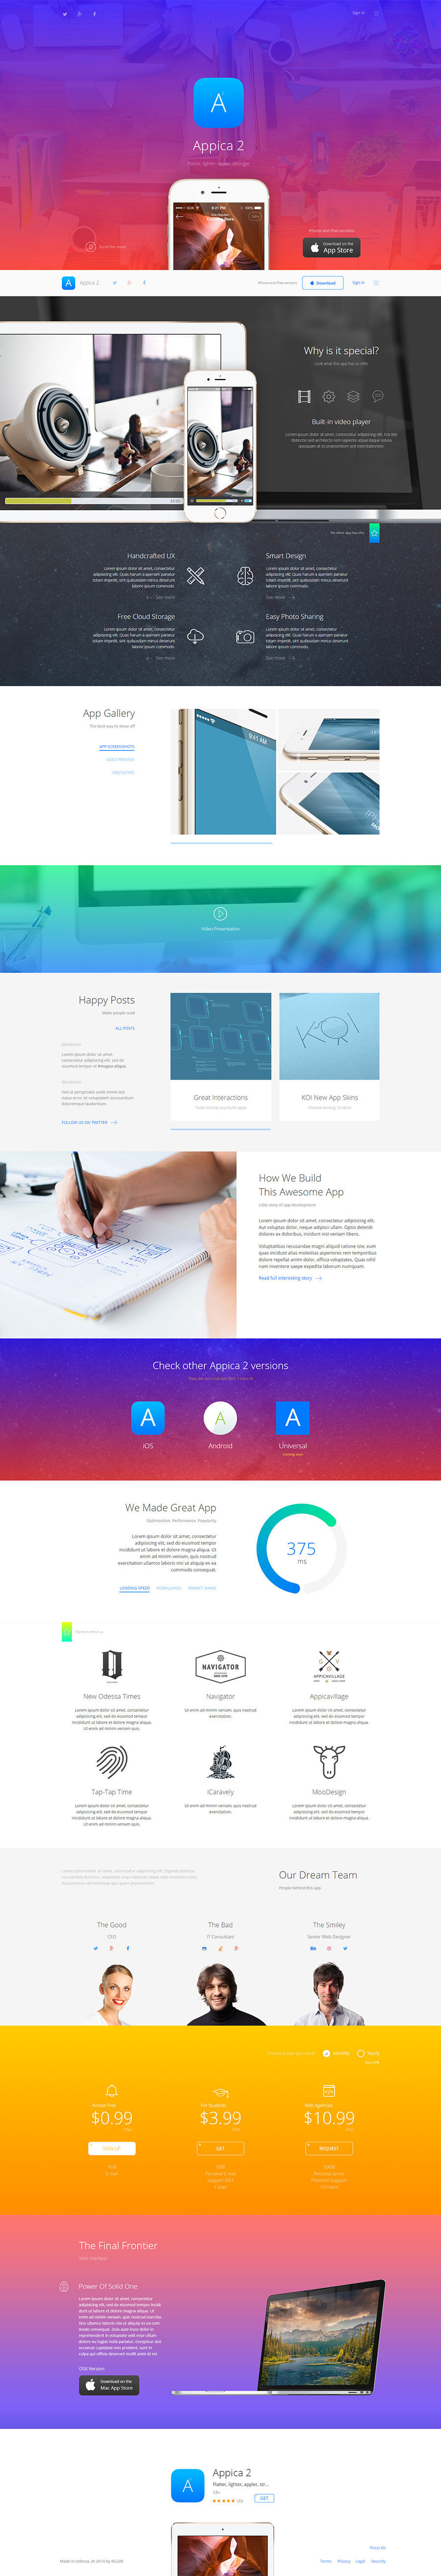 Appica 2 App Showcase Template By 8guild Themeforest